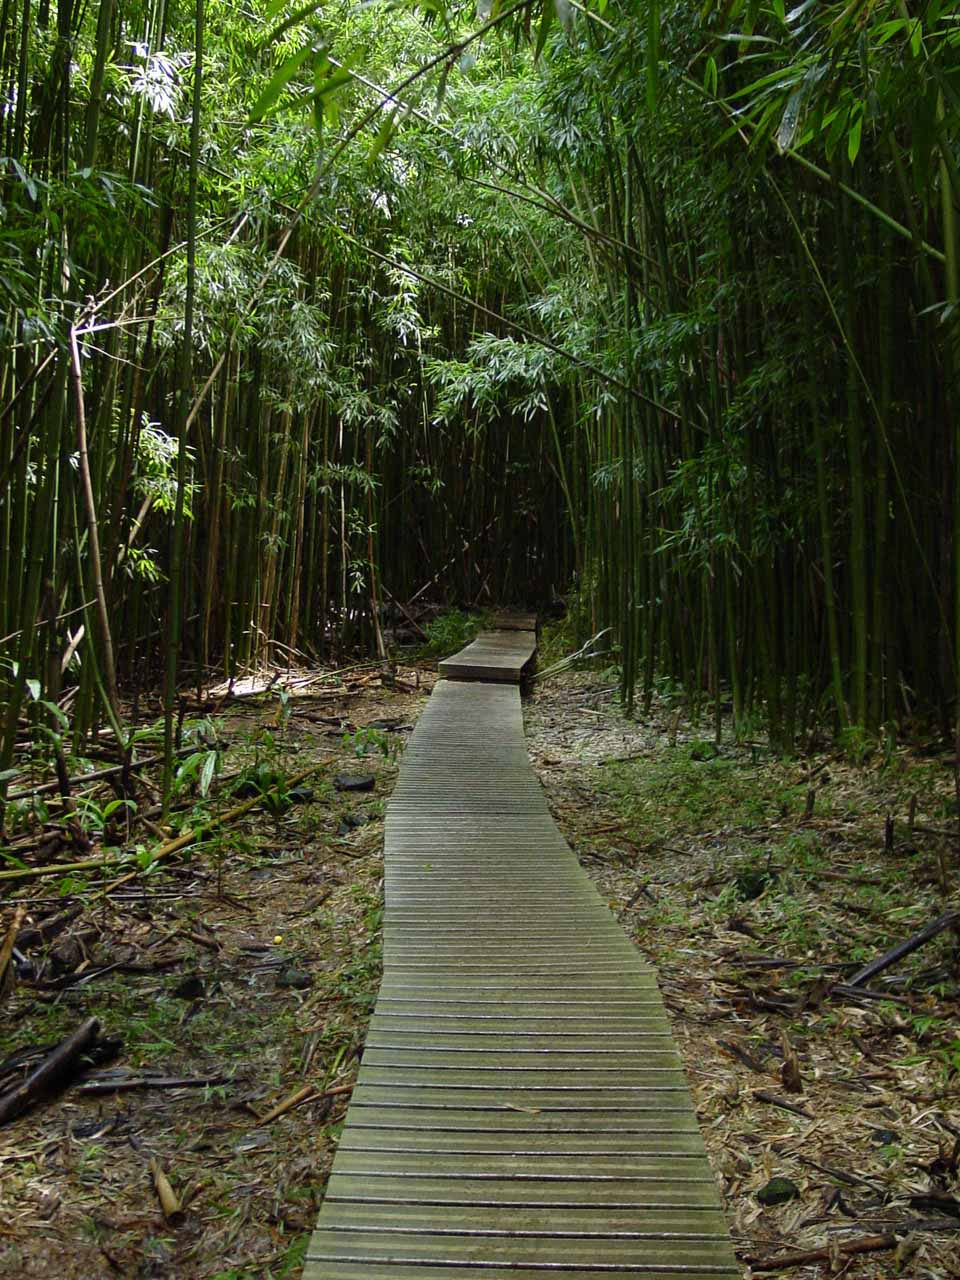 Hiking within the darkness of the bamboo forest